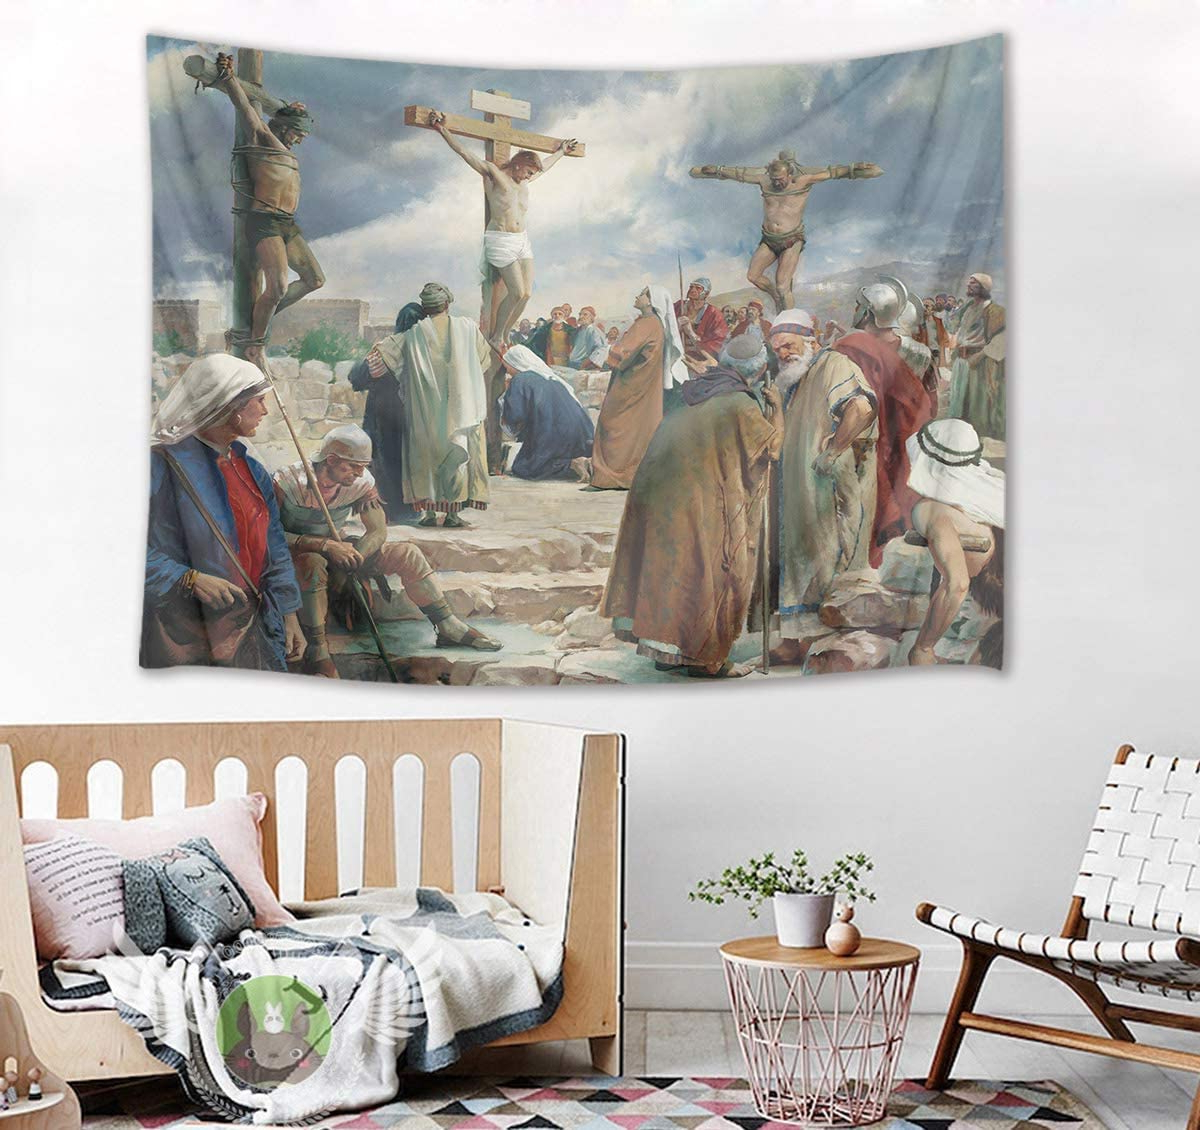 Trendy Blended Fabric Blessings Of Christmas Tapestries Inside Hvest Easter Tapestry Jesus Christ On The Cross Wall Hanging Christian Crucifix Tapestries For Bedroom Living Room Dorm Wall Decor Church Party (View 9 of 20)